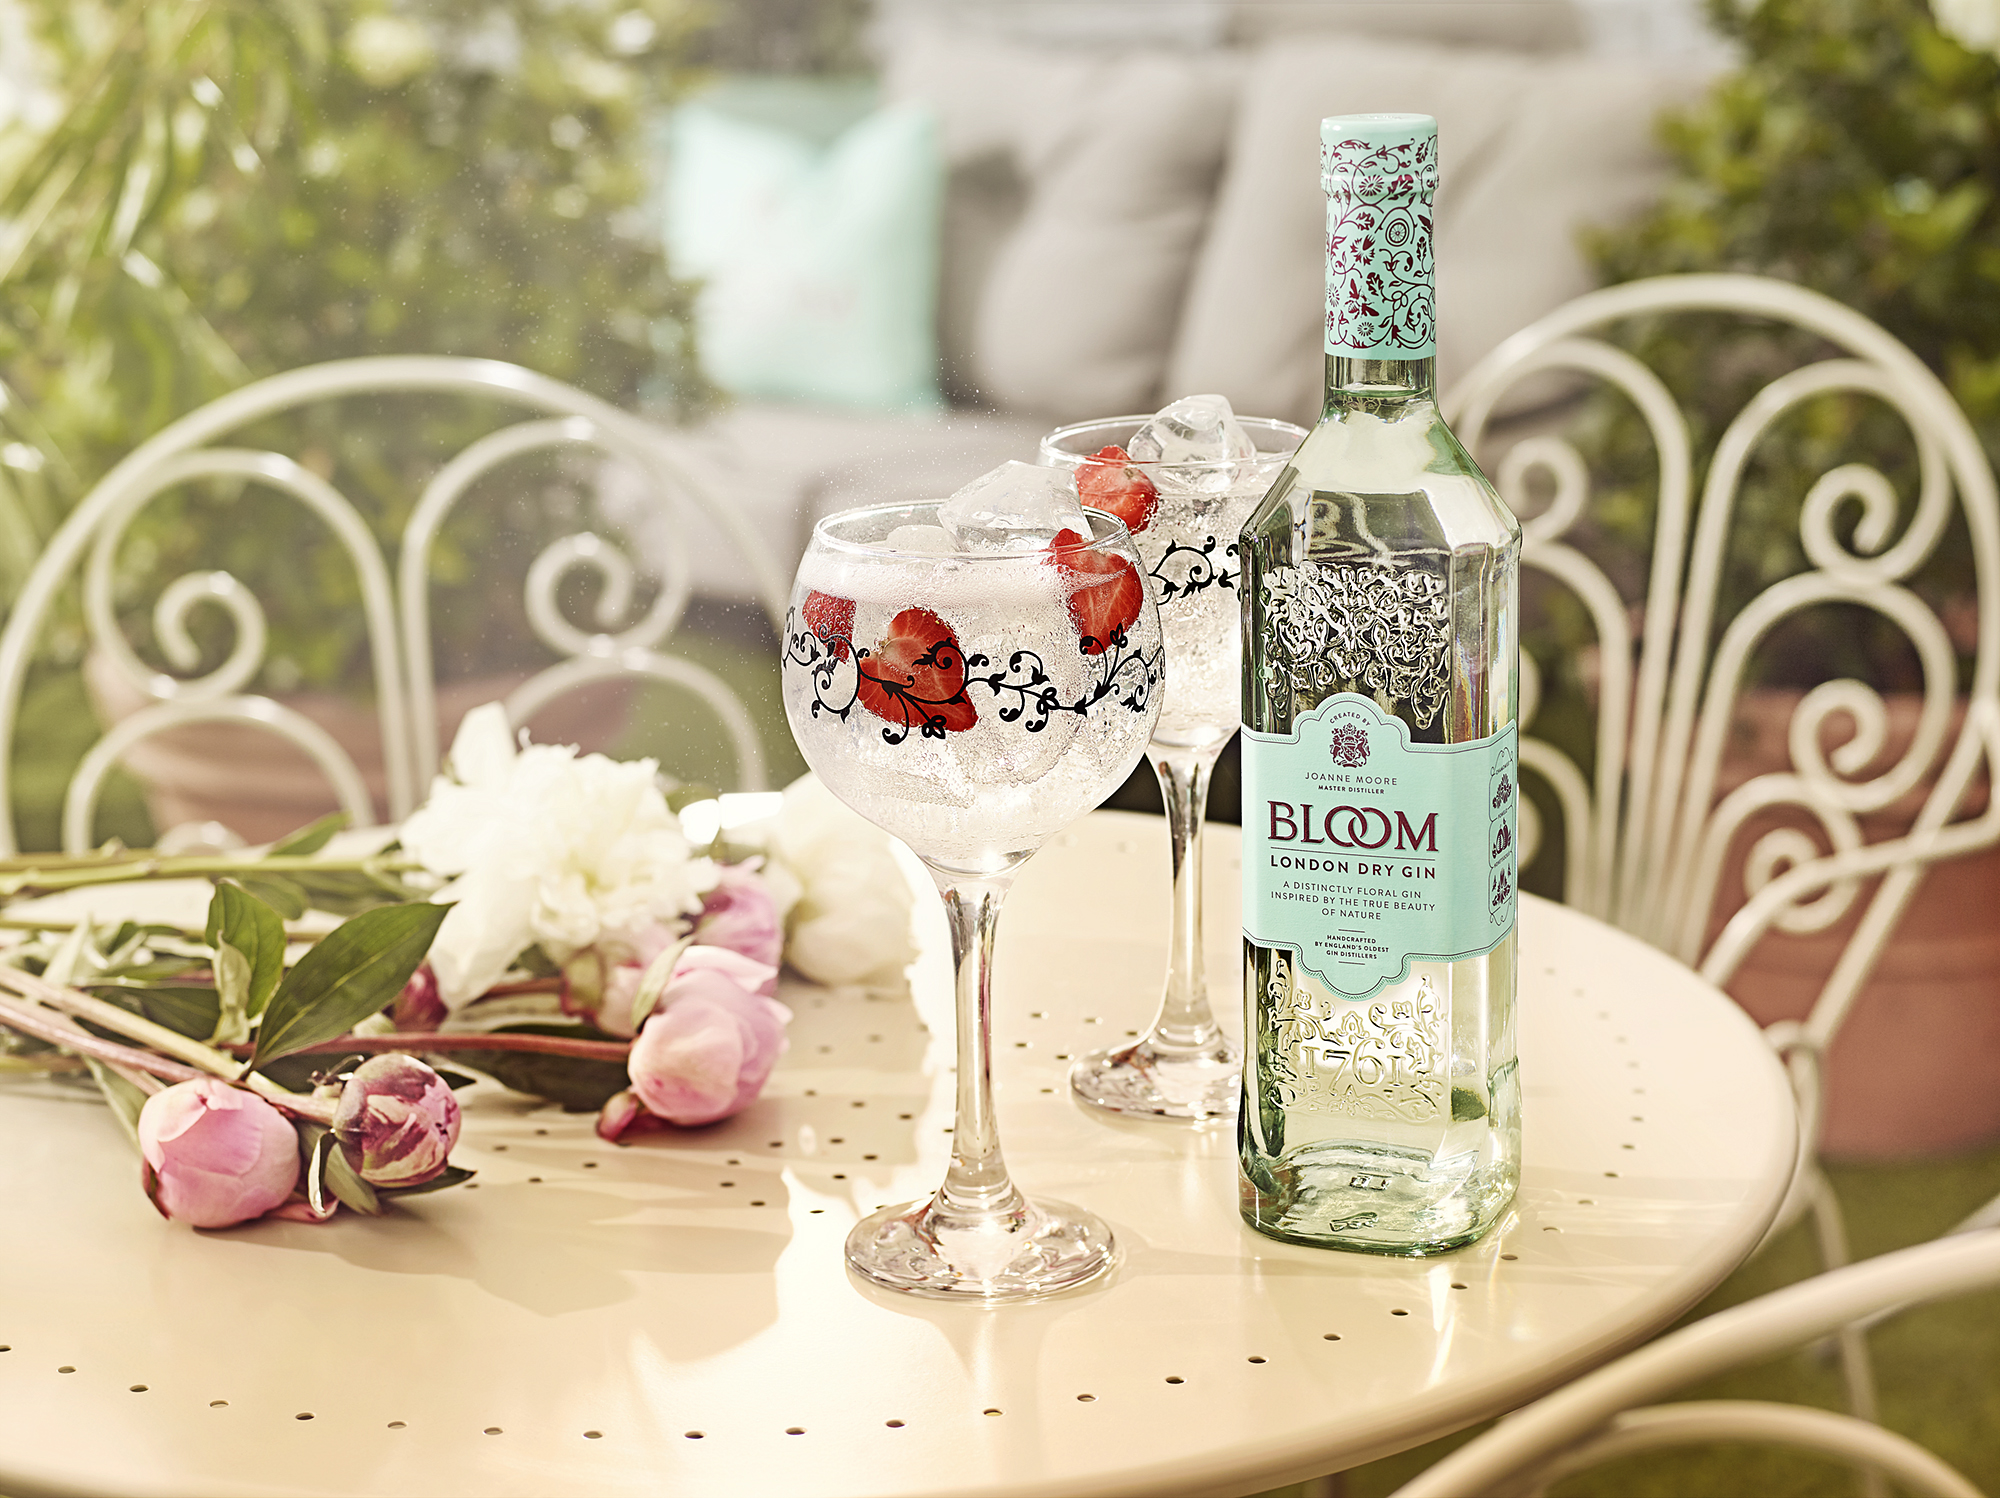 BLOOM London Dry Gin Launched